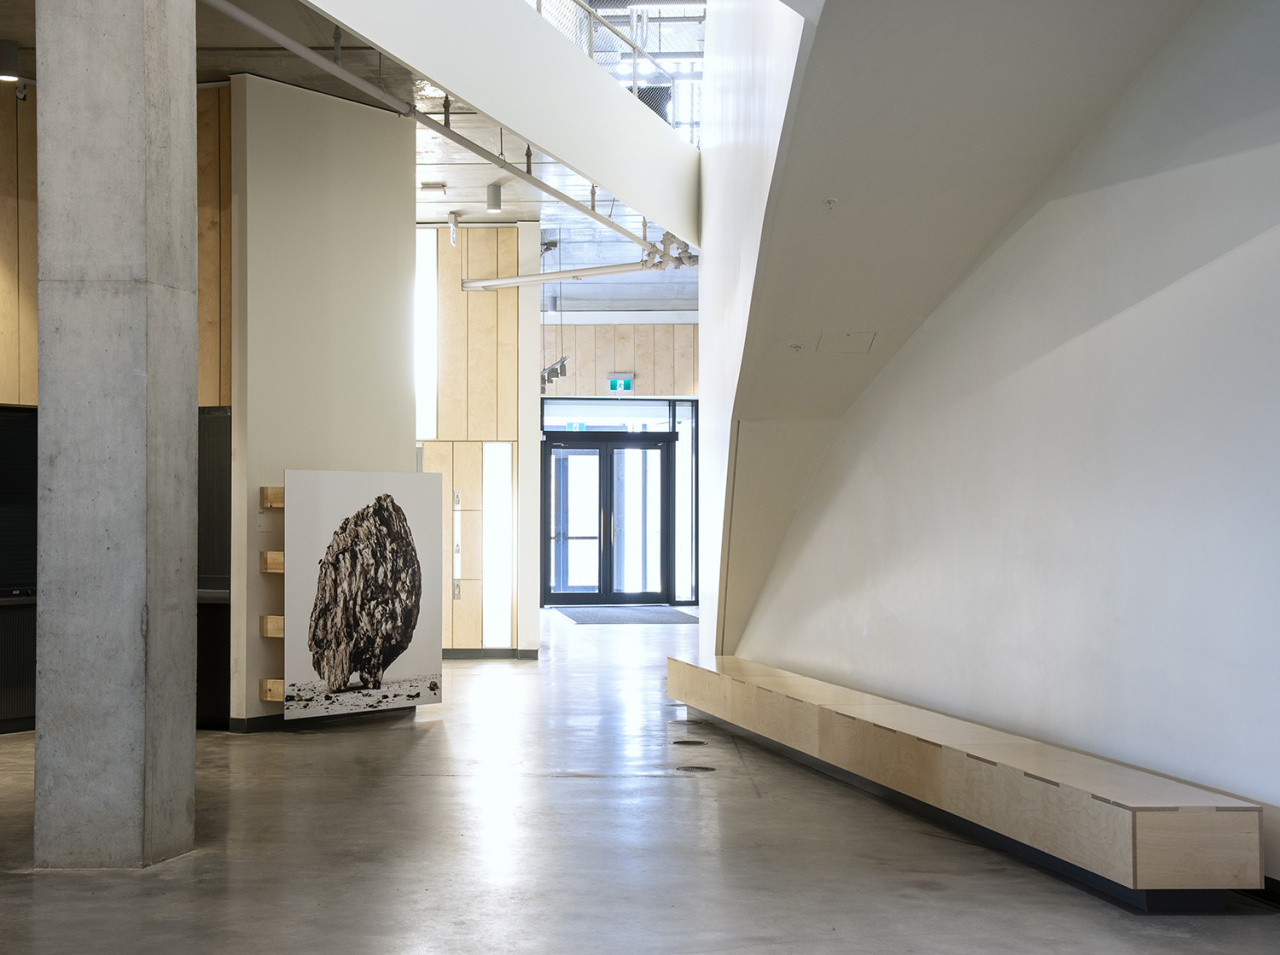 Susan Dobson, Back/Fill, Installation at Daniels Faculty of Architecture, Landscape, and Design, Toronto, 2019. Photo: Susan Dobson. Courtesy CONTACT, the artist.